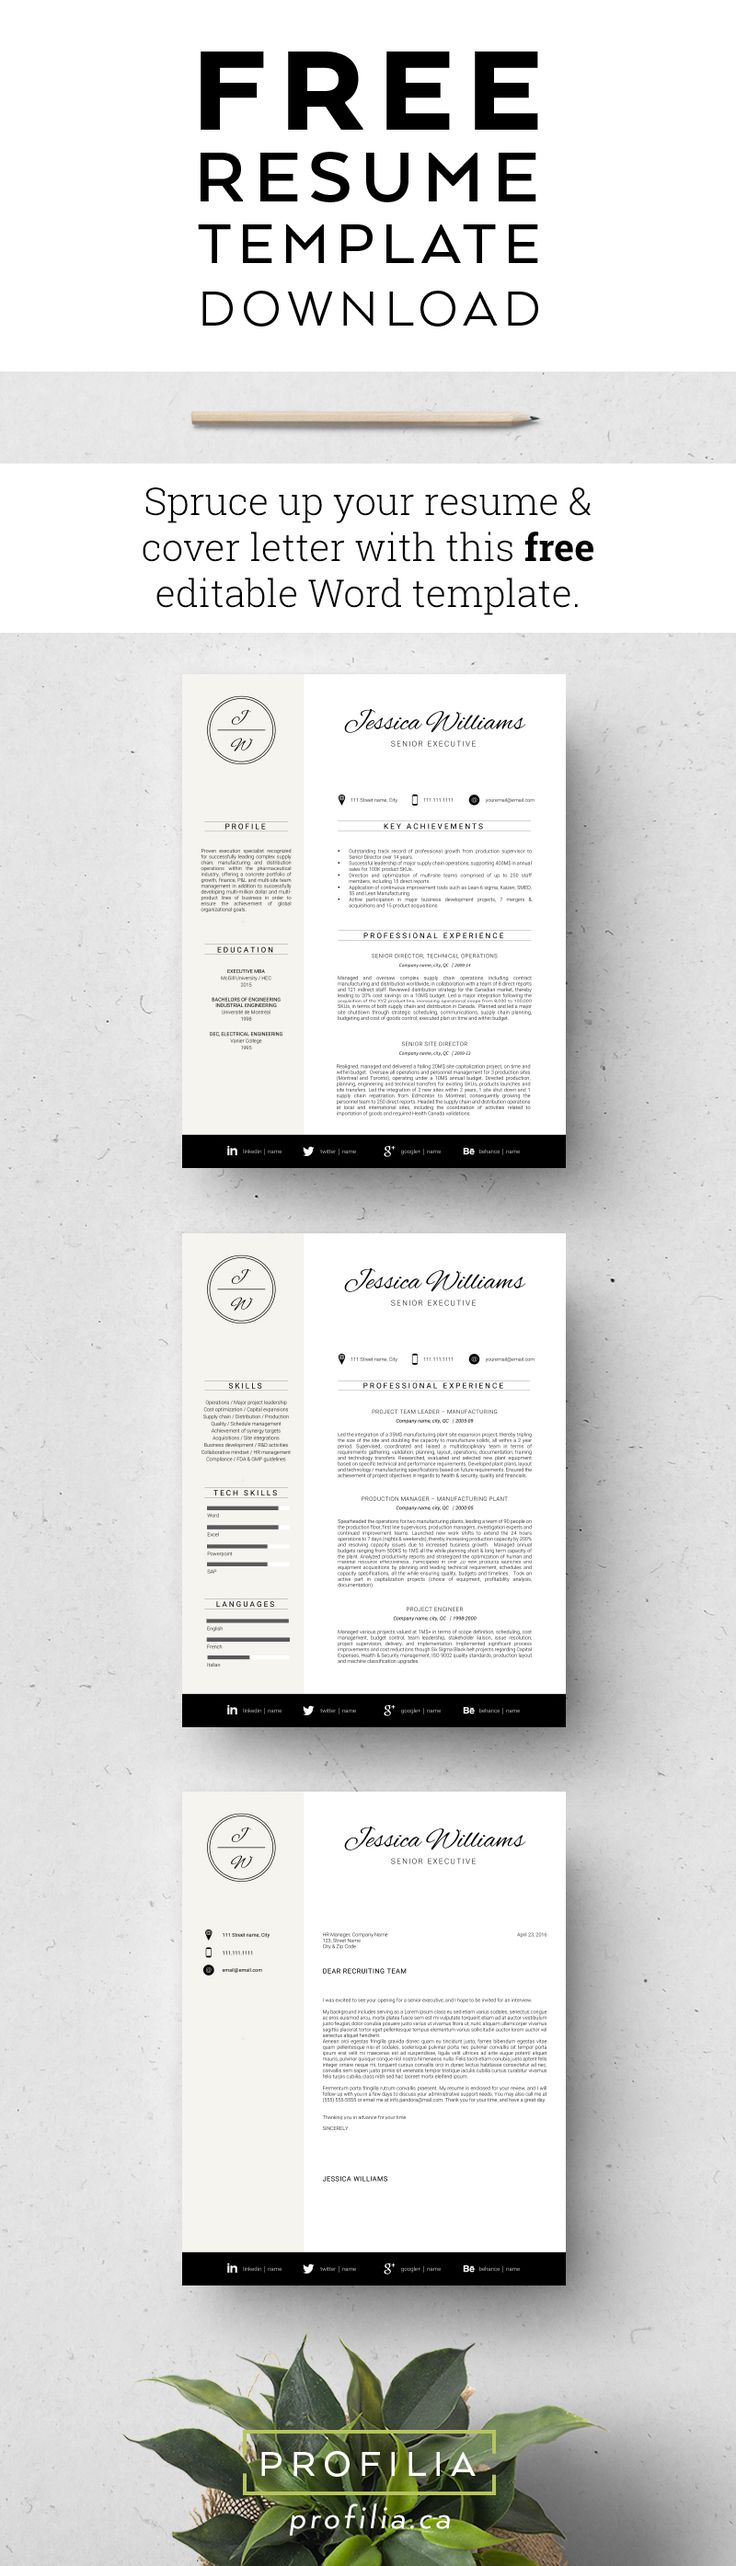 free resume template refresh your job search with this free resume cover - Free Resume Cover Letters